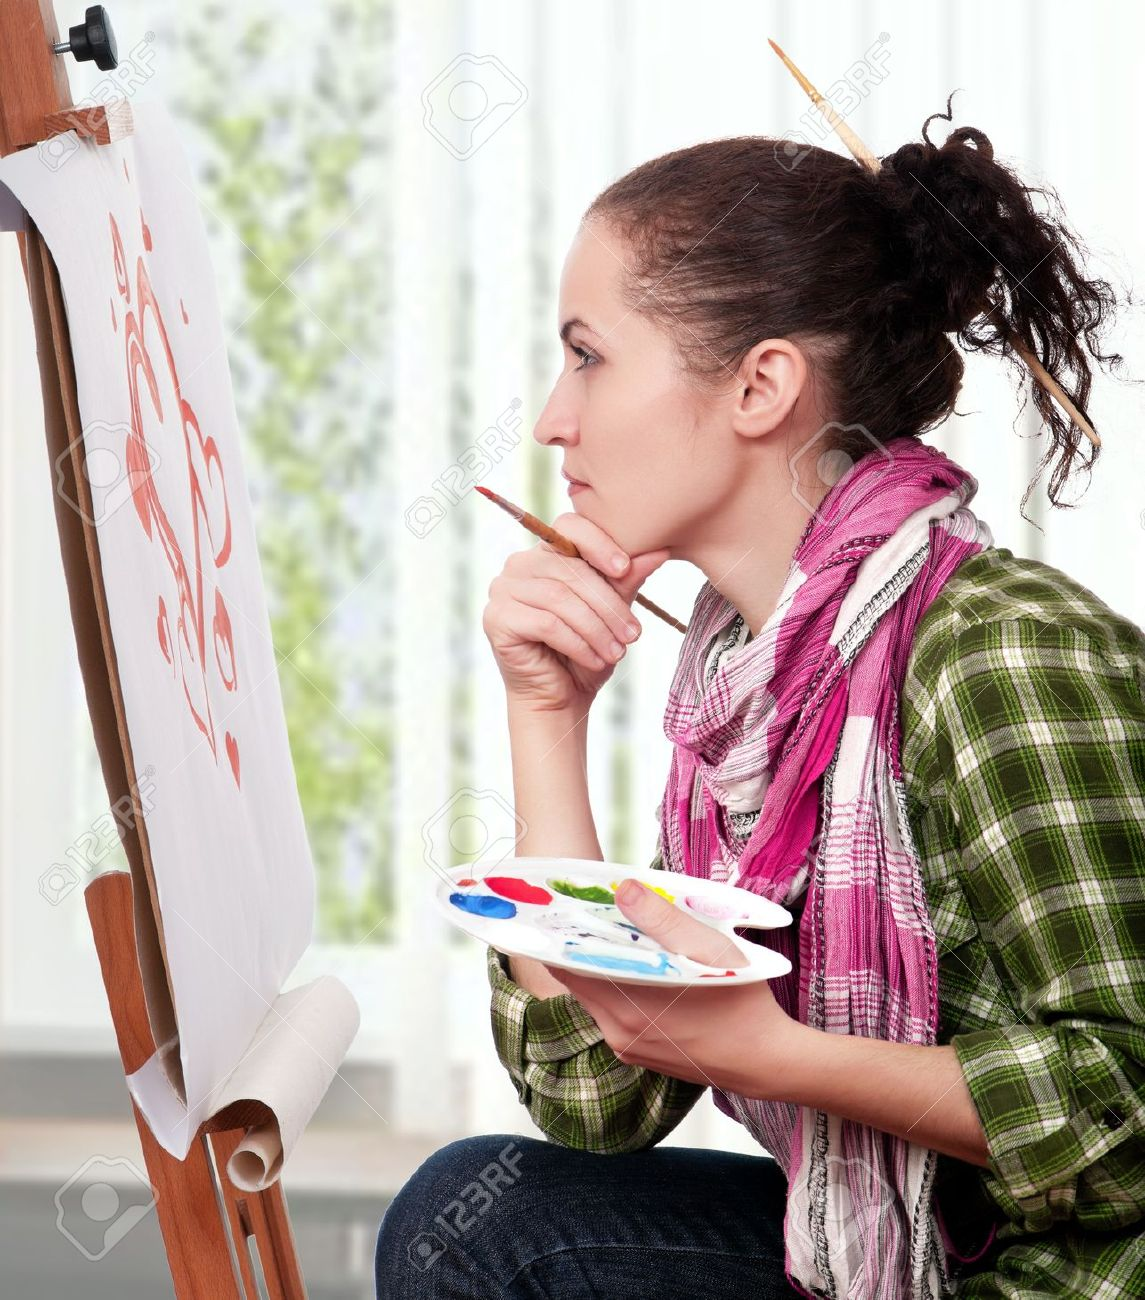 Beautiful girl with brushes near easel, painting on canvas. Stock Photo - 8380860